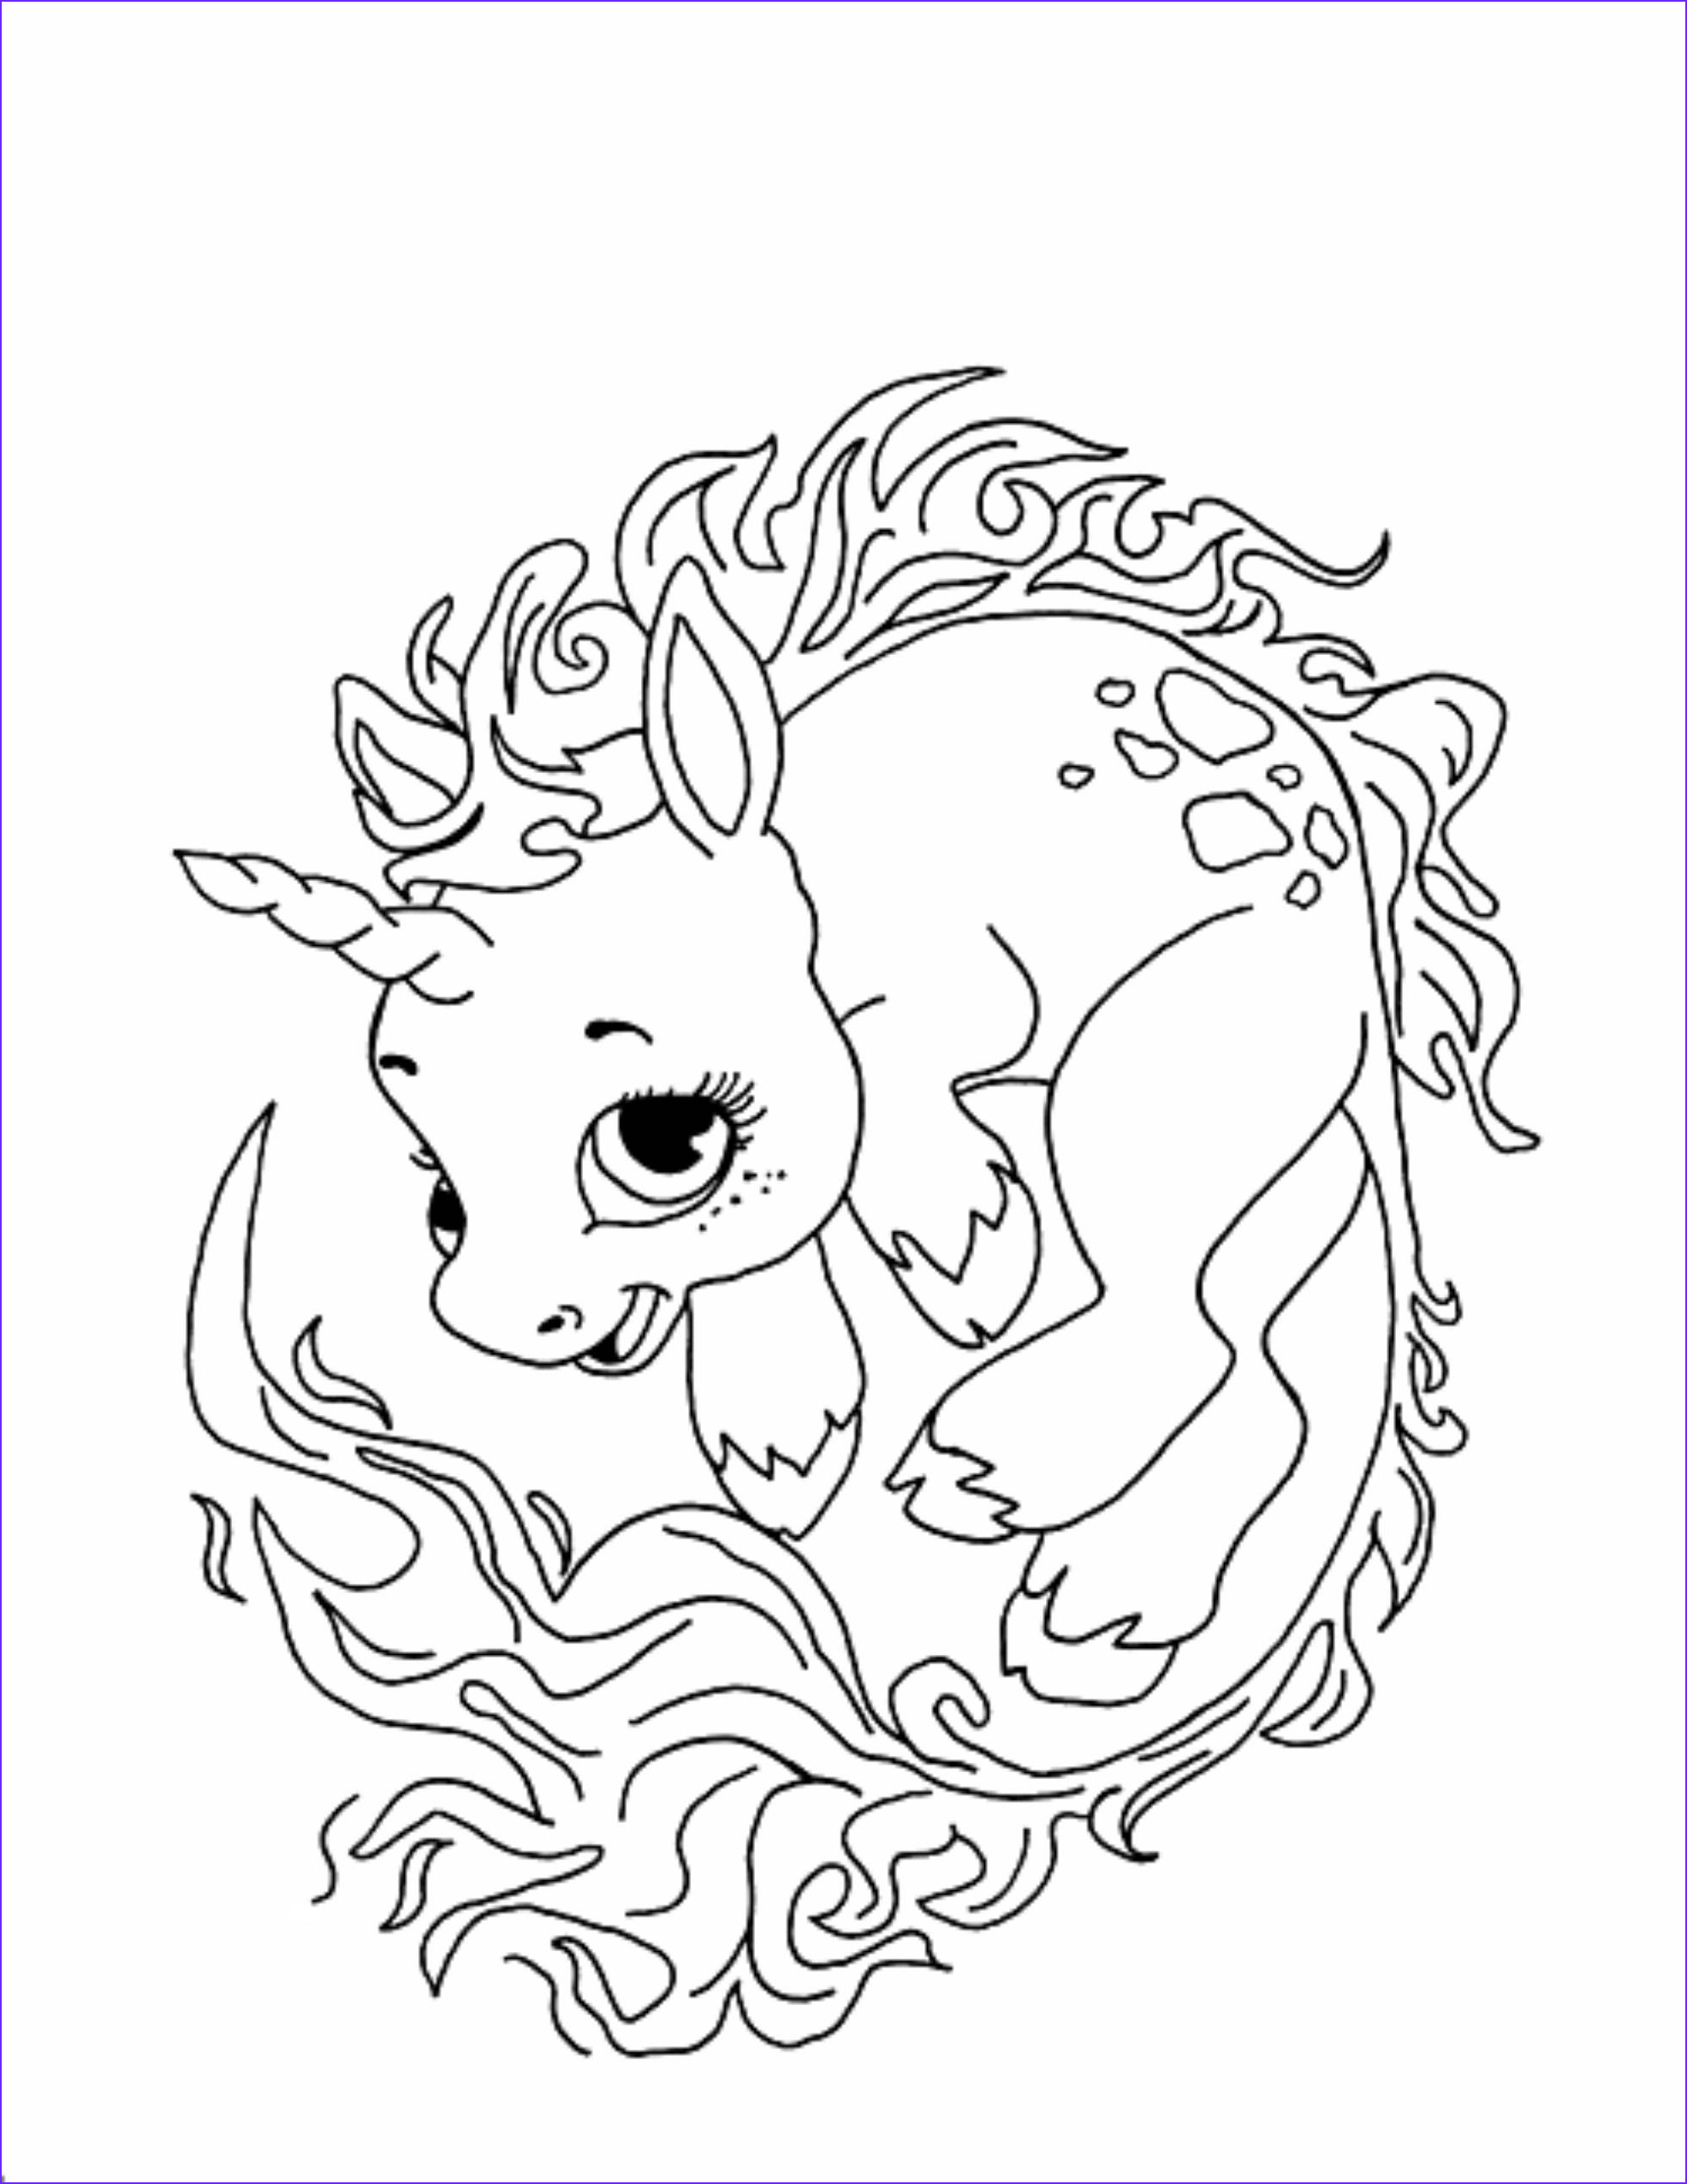 Unicorn Coloring Book Beautiful Images Print & Download Unicorn Coloring Pages for Children